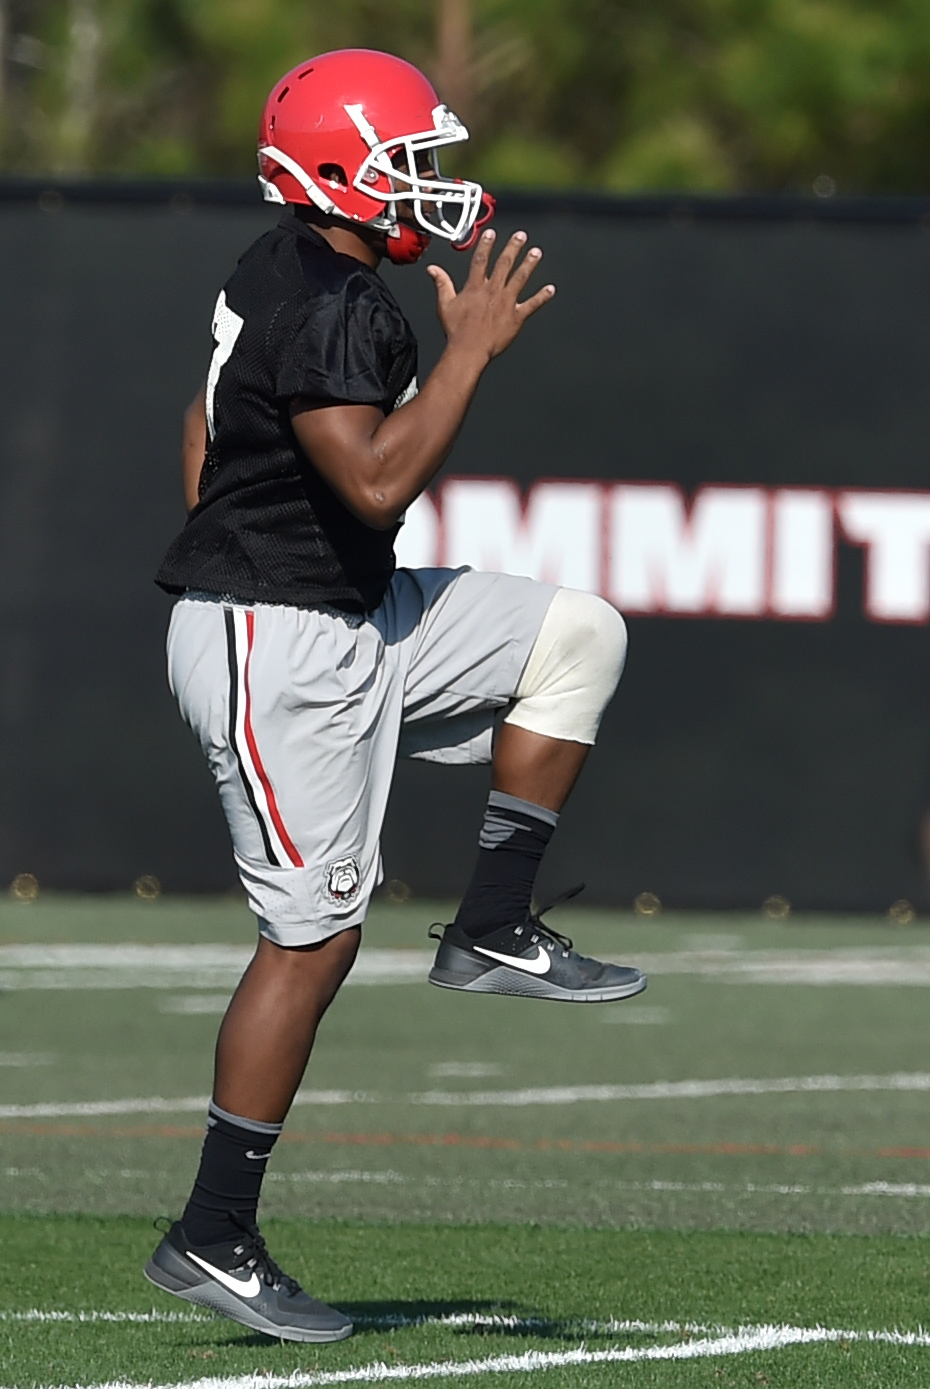 Georgia running back Nick Chubb, returning from a knee injury last season, works out by himself during the first day of spring NCAA college football practice, Tuesday March 15, 2016, in Athens, Ga. (Brant Sanderlin/Atlanta Journal-Constitution via AP)